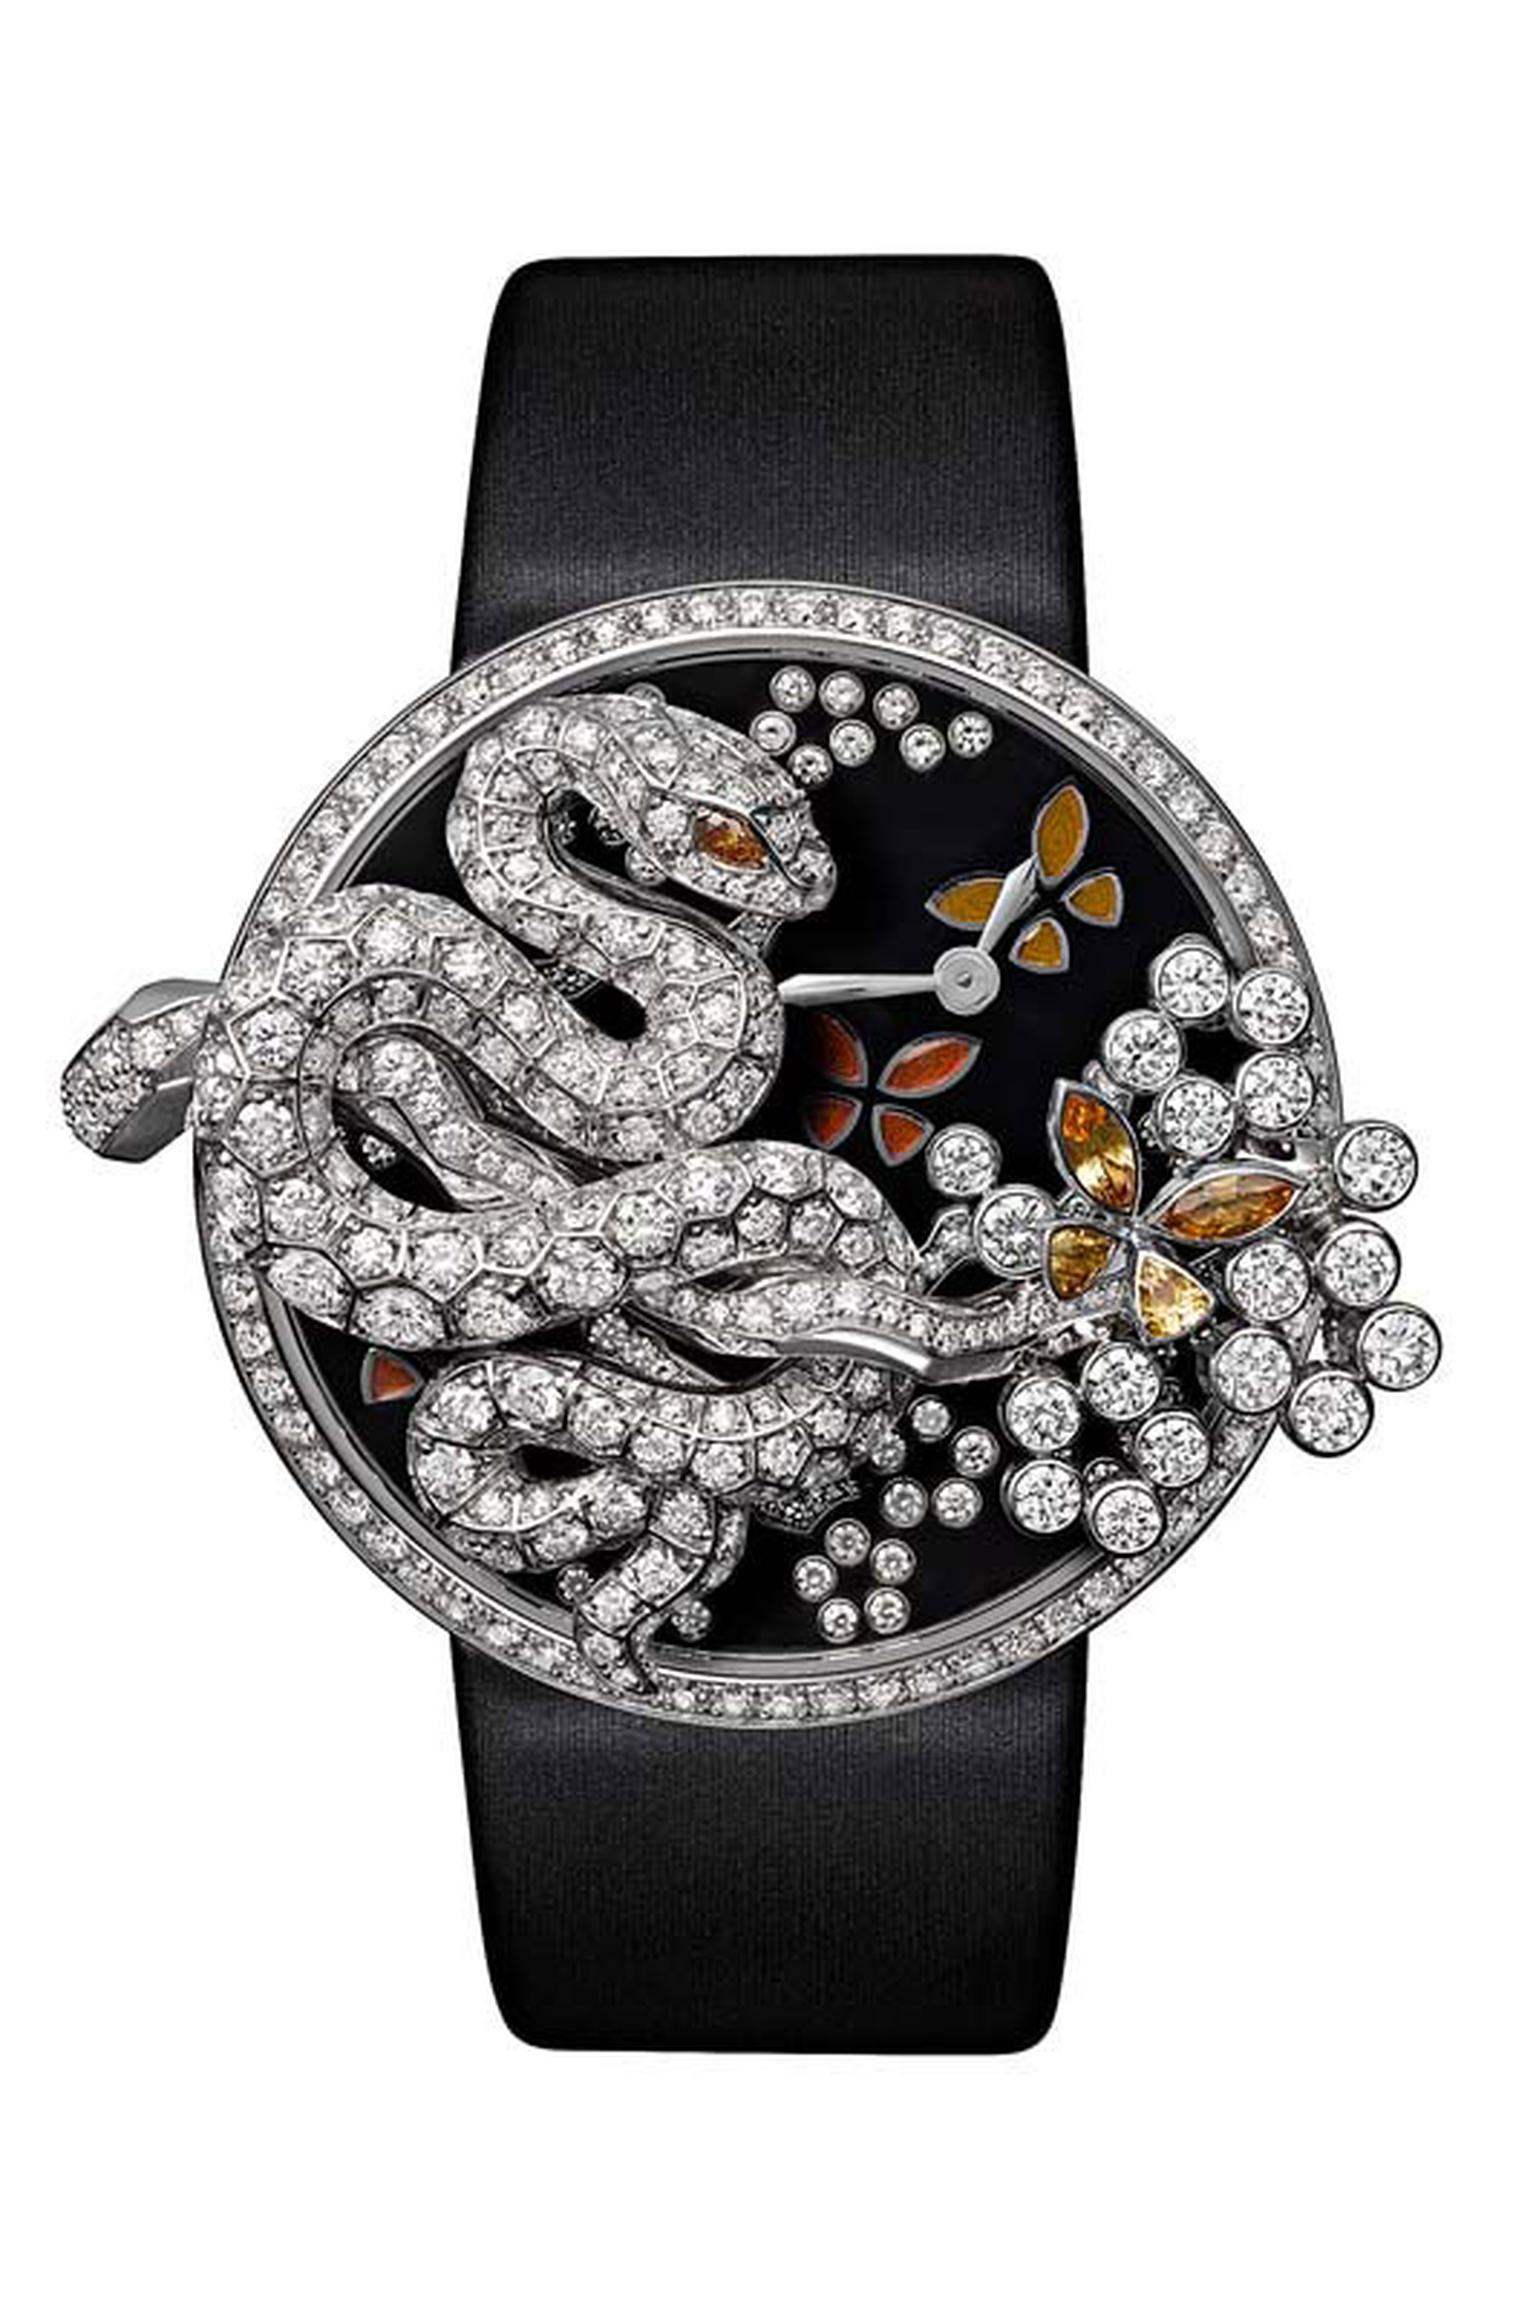 Cartier Fabuleux snake watch, a numbered edition limited to 60 pieces. Case in white gold set with brilliant-cut diamonds.